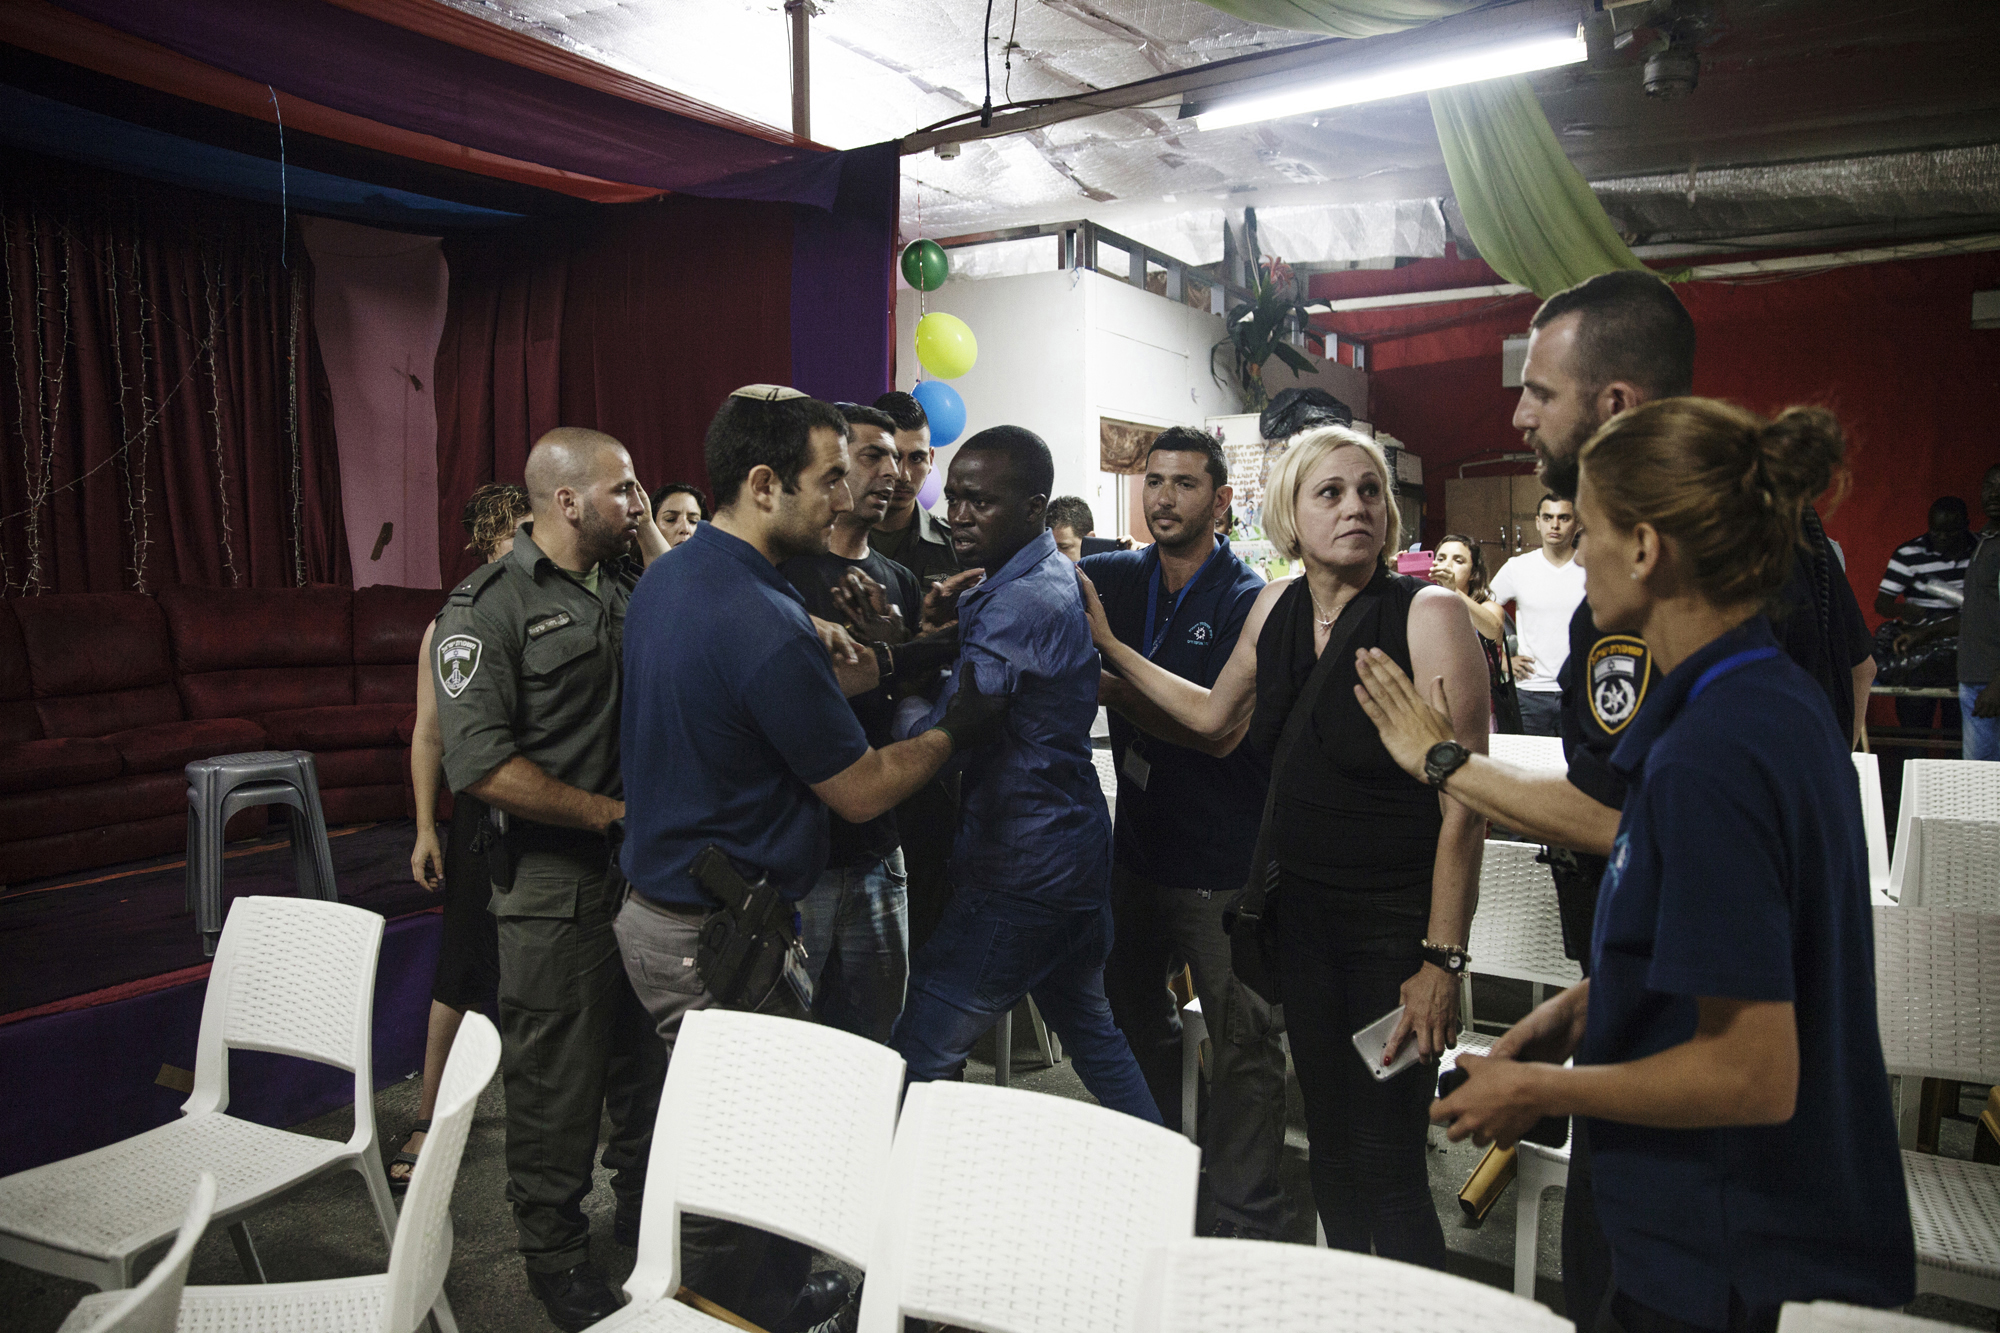 Police officers arrested an asylum seeker at a graduation party for Taj Jemy, another asylum seeker, while an Israeli activist tried to intervene. Seven people were arrested that night for not having visas on them.